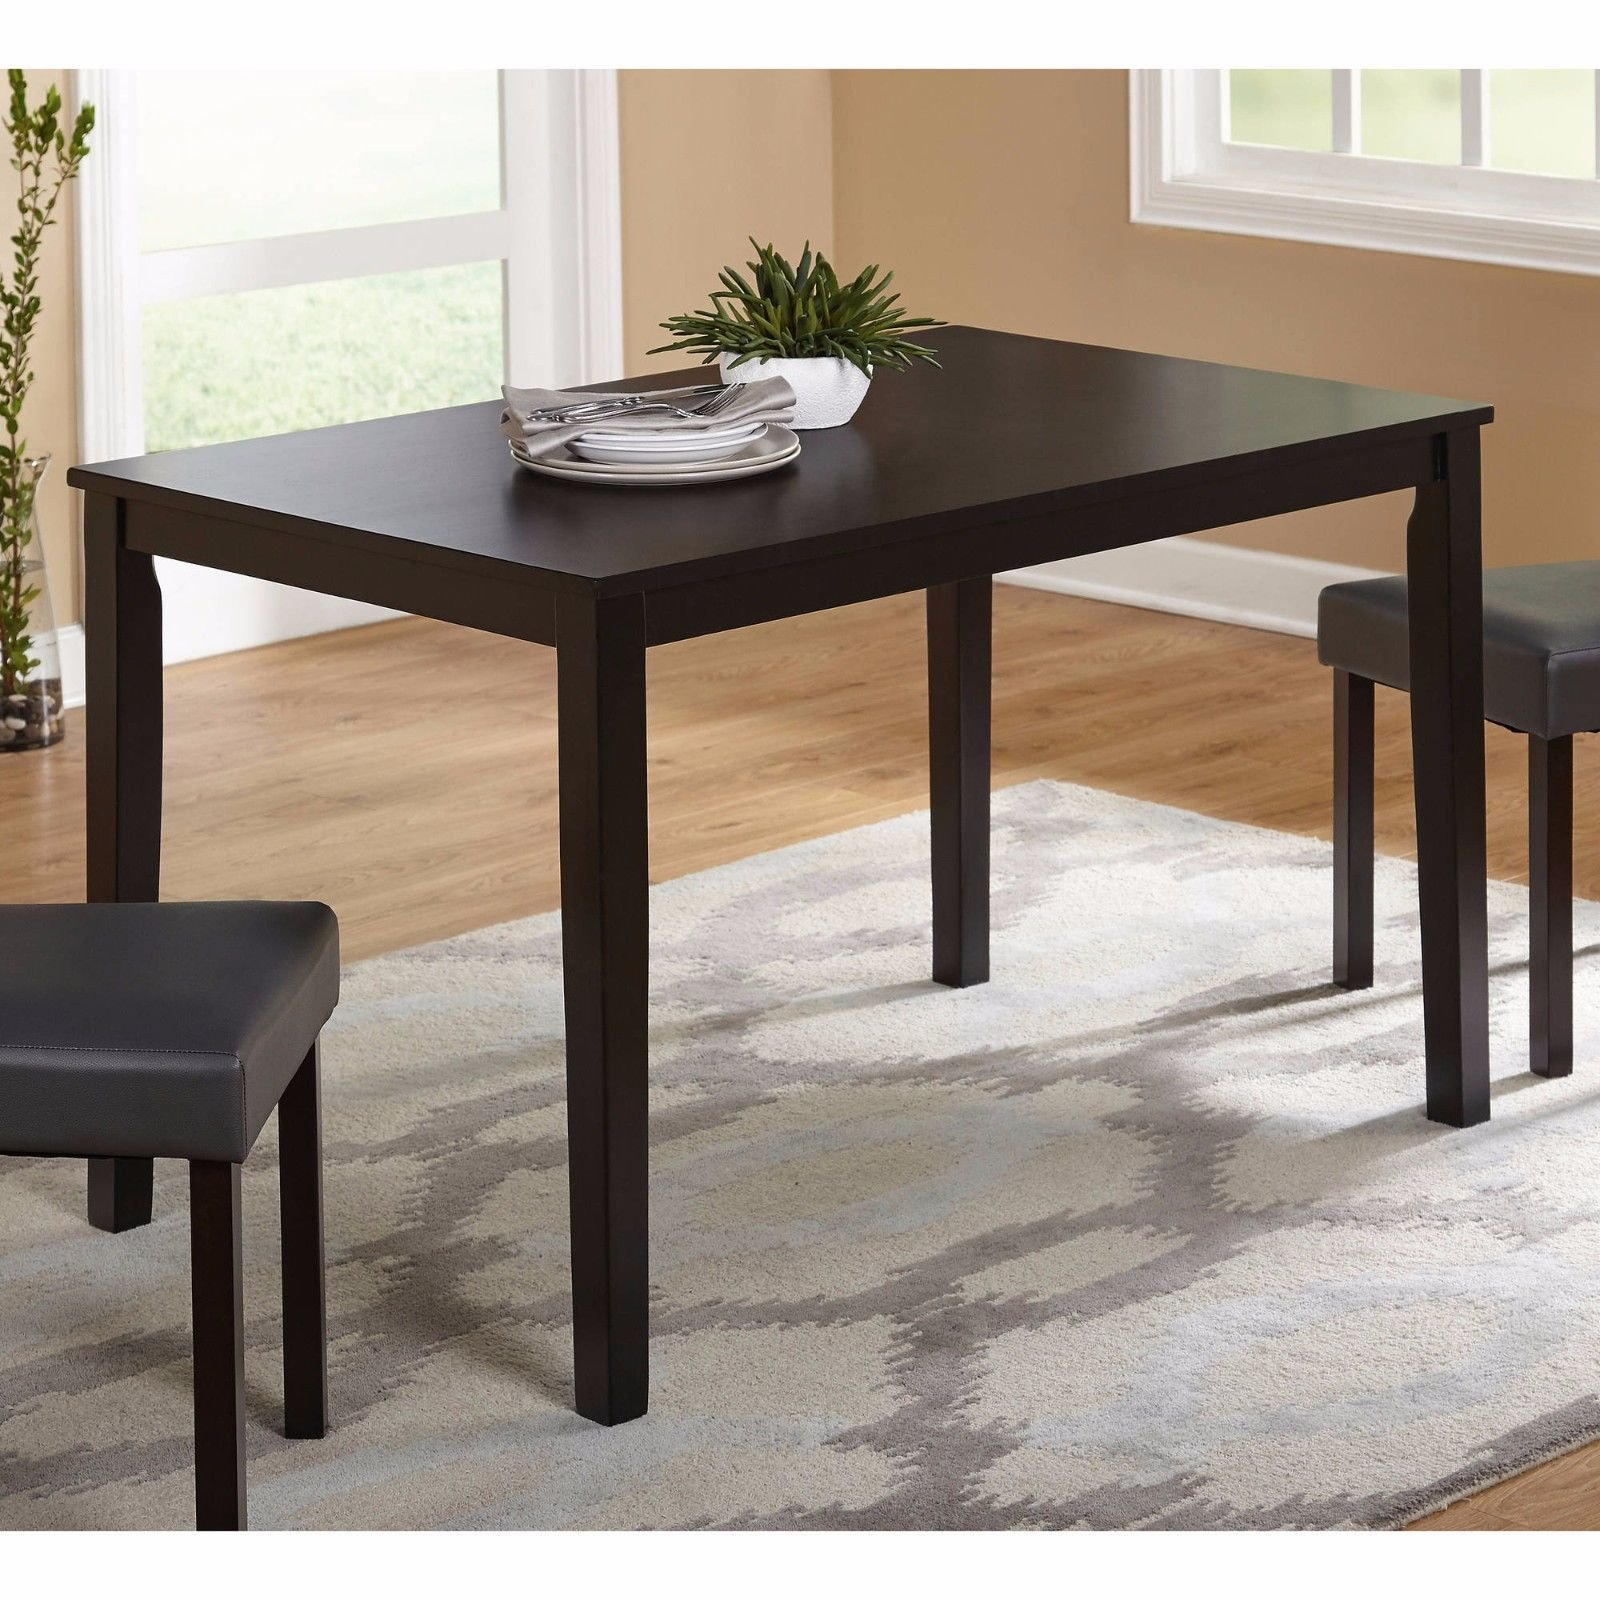 4 Person Cappuccino Dining Table, Small Dinette 30x48